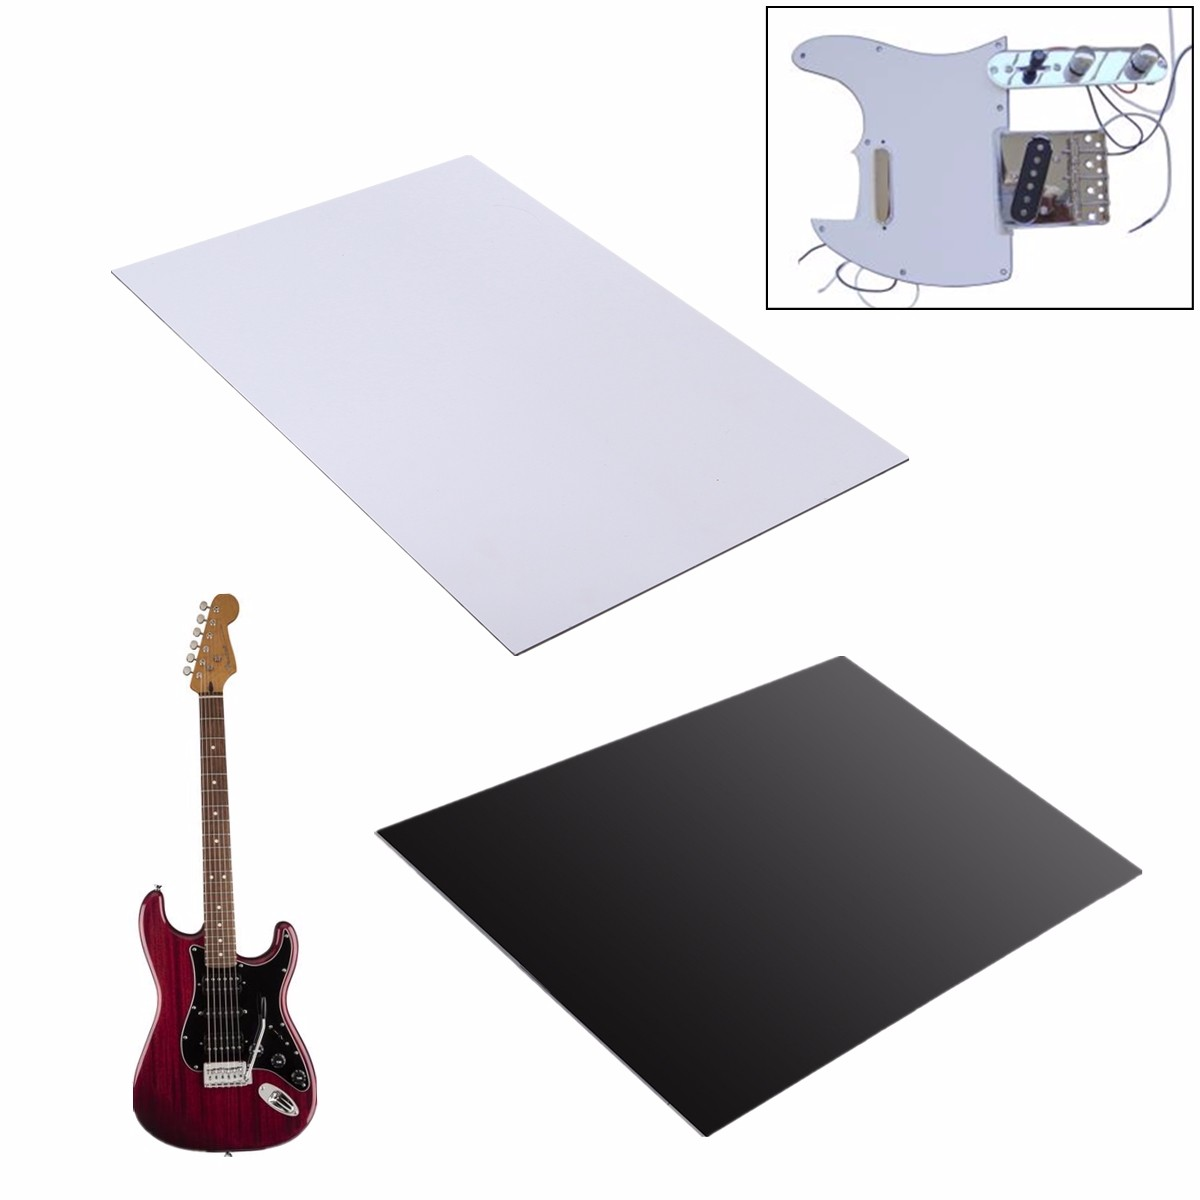 29x43cm Guitar Bass Pickguard Blank Material Plain White 3Ply Pickguard Sheet Guitar Parts Accessories